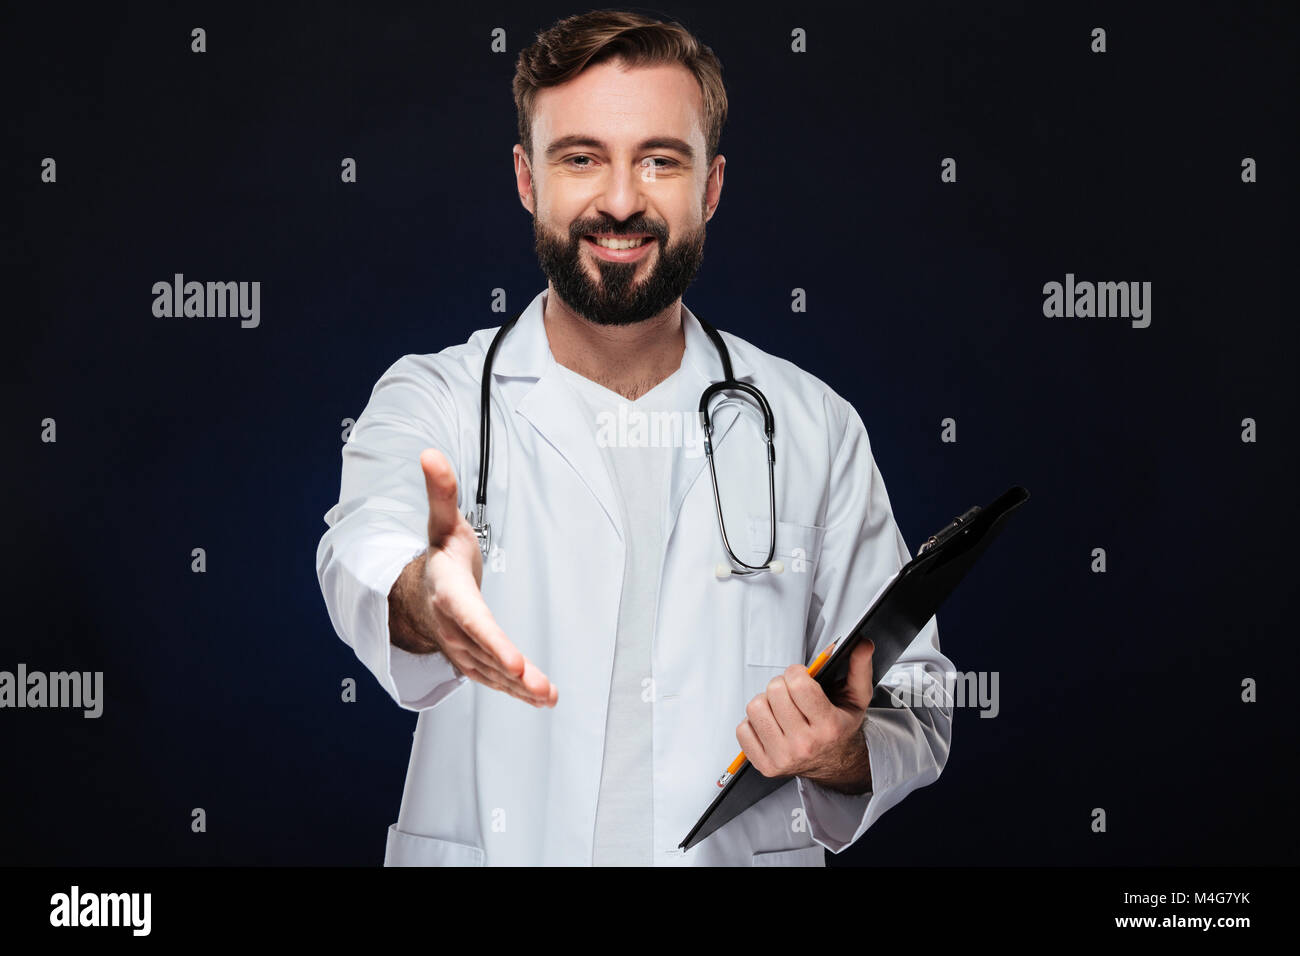 Portrait of a happy male doctor dressed in uniform with stethoscope standing with outstretched hand for greeting Stock Photo